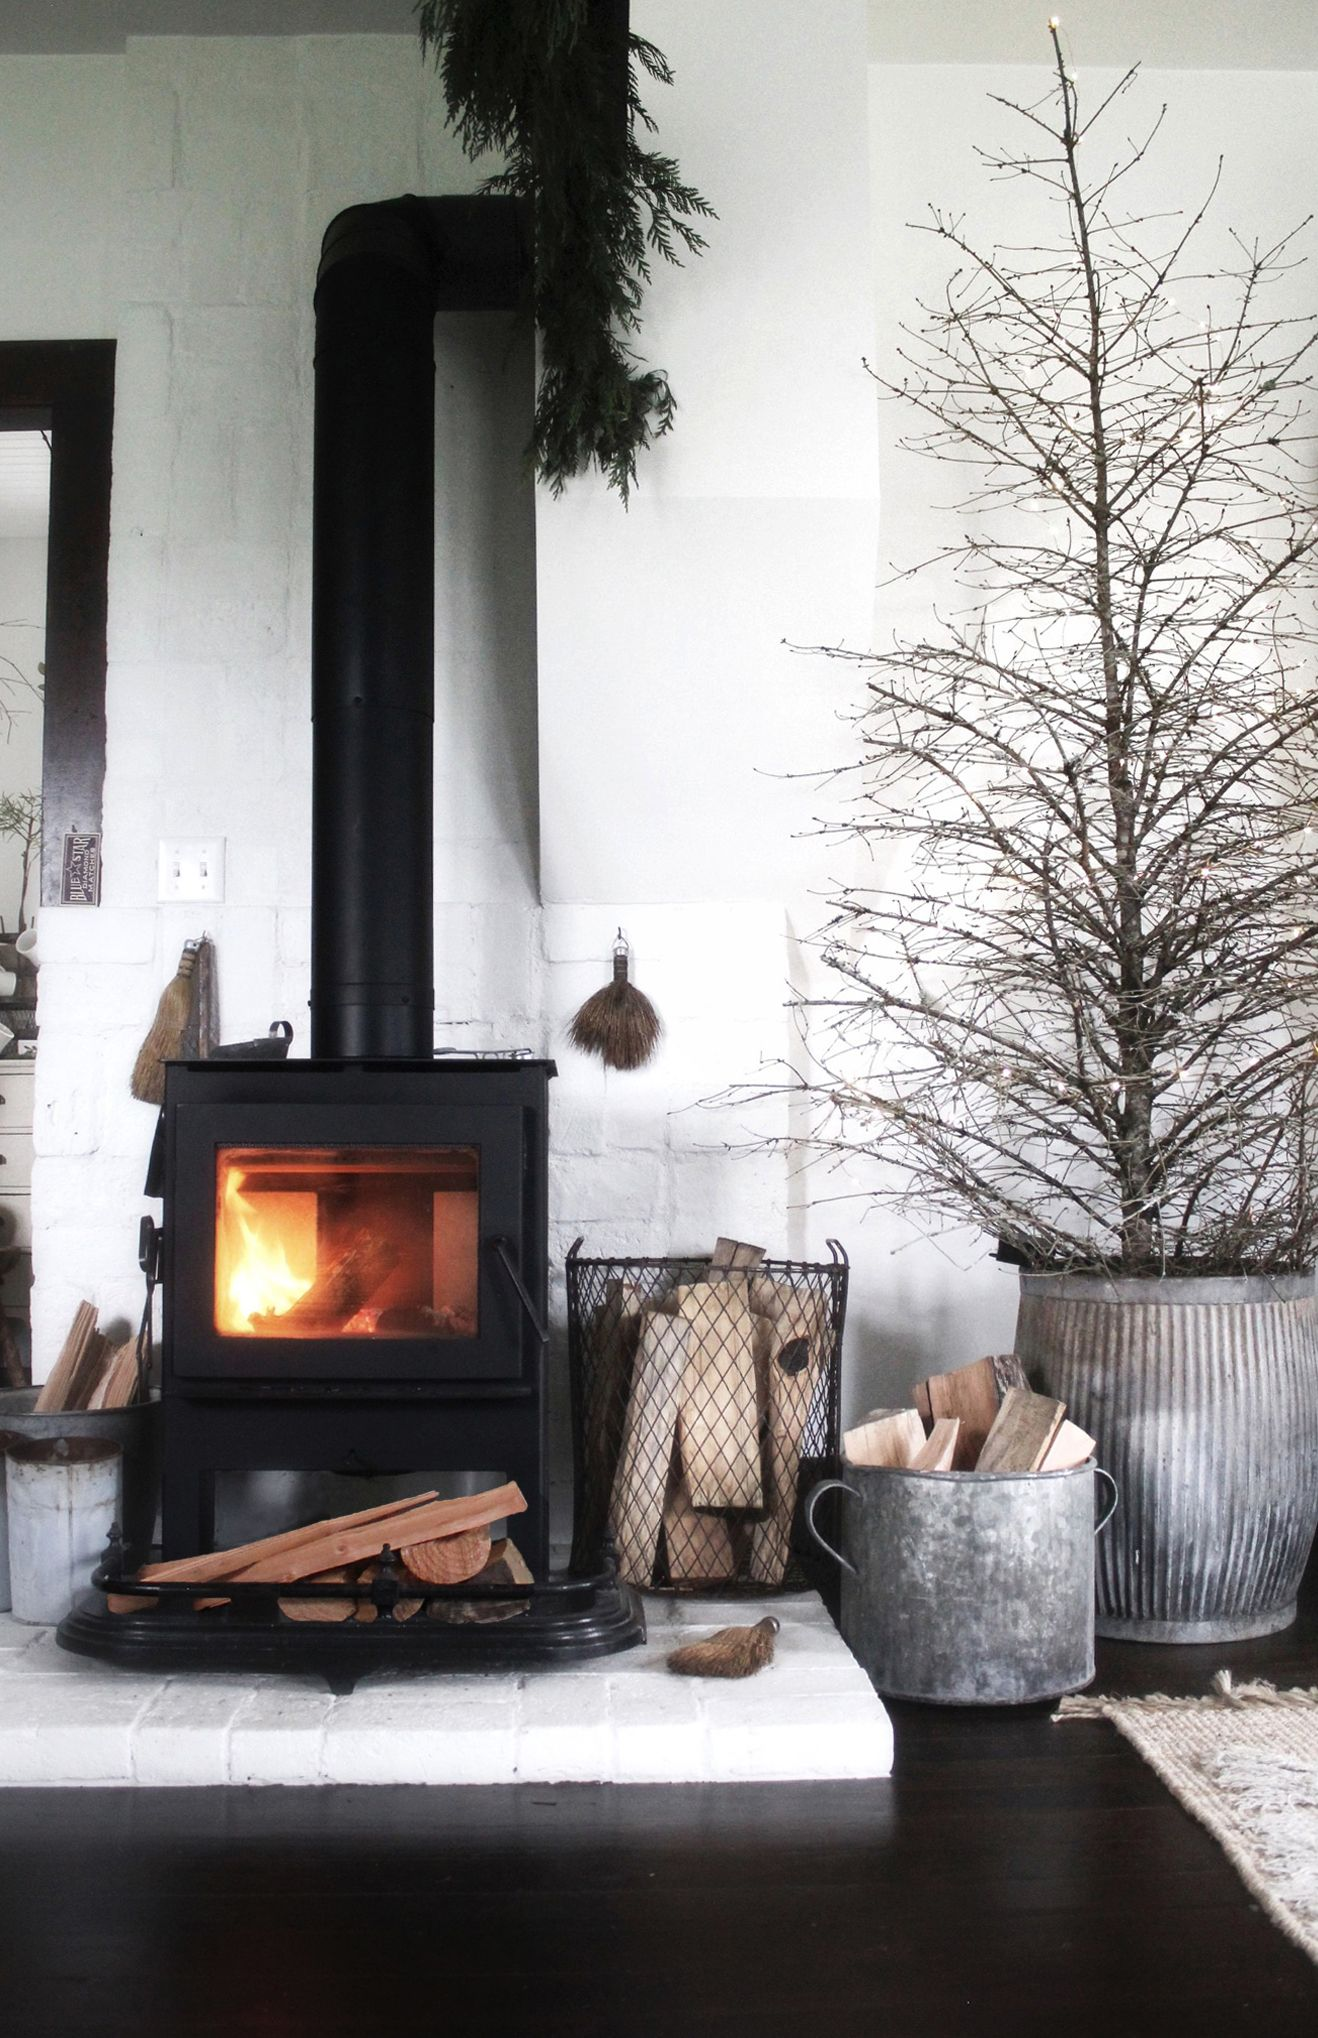 Fireplace | Interiors | Pinterest | Stove, Black wood and Interiors